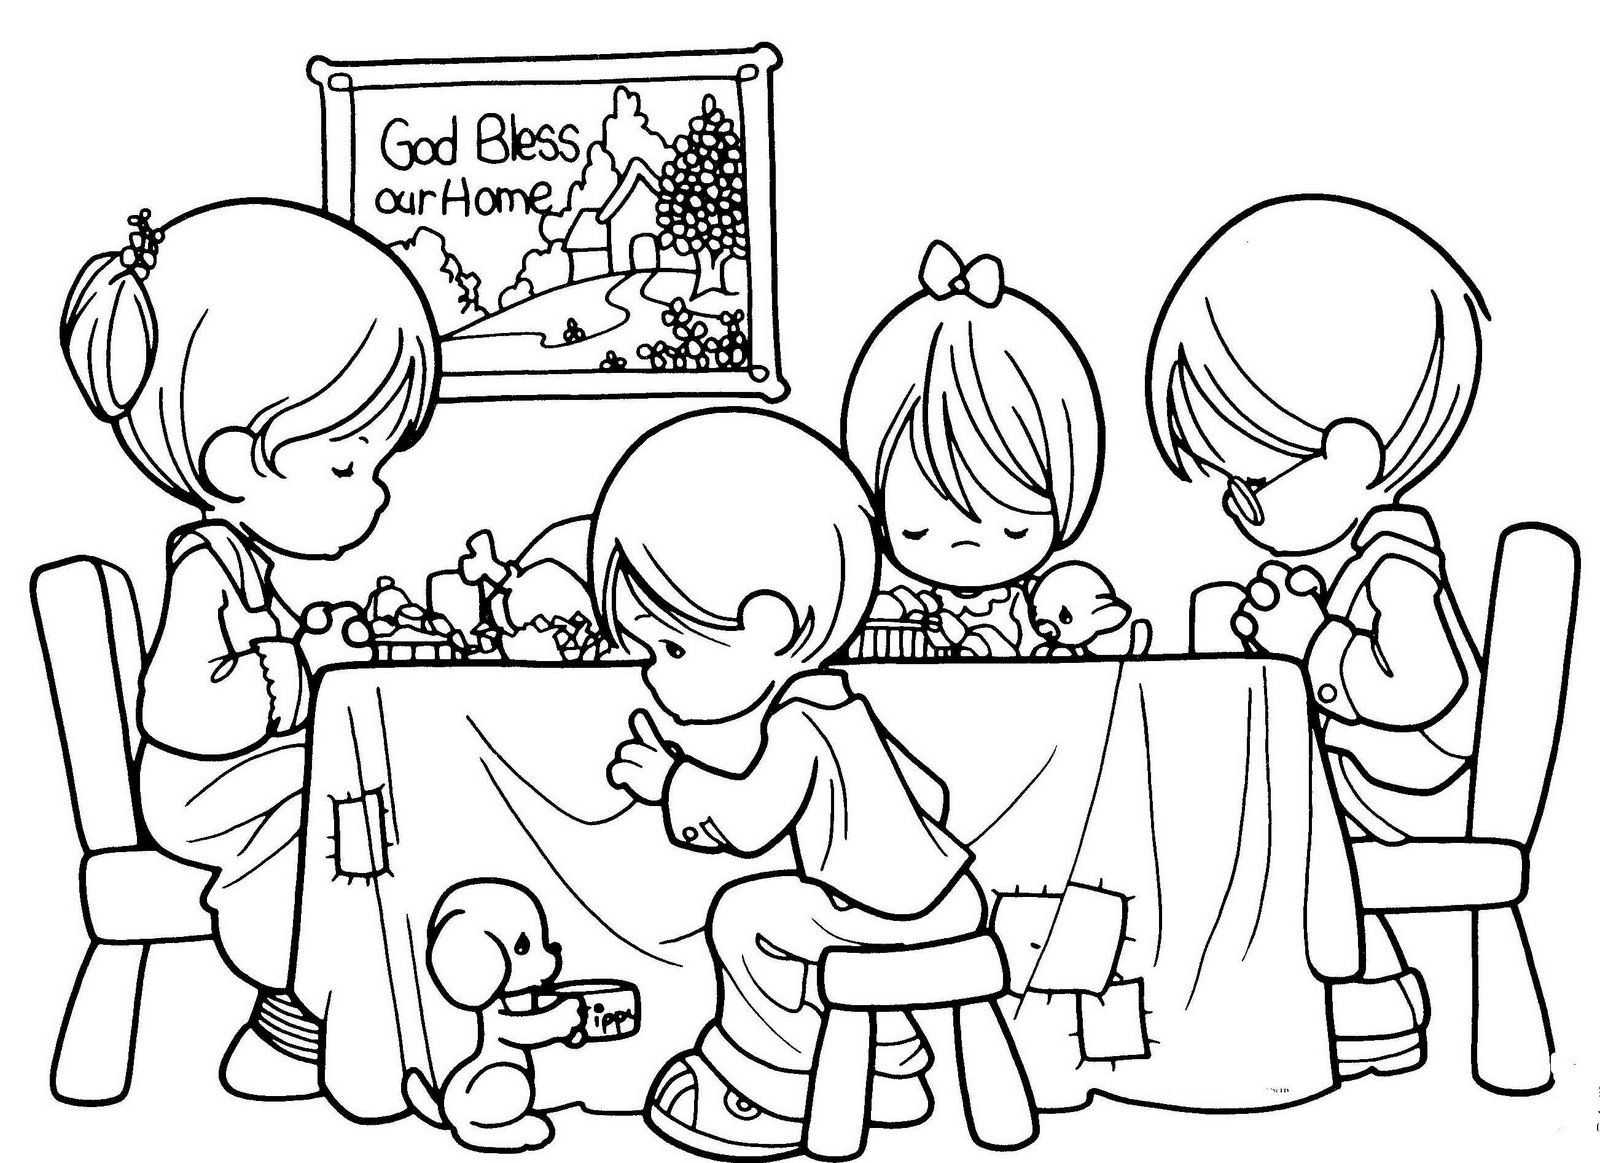 Free Printable Christian Coloring Pages For Kids Best Coloring Pages For Kids Precious Moments Coloring Pages Thanksgiving Coloring Pages Family Coloring Pages